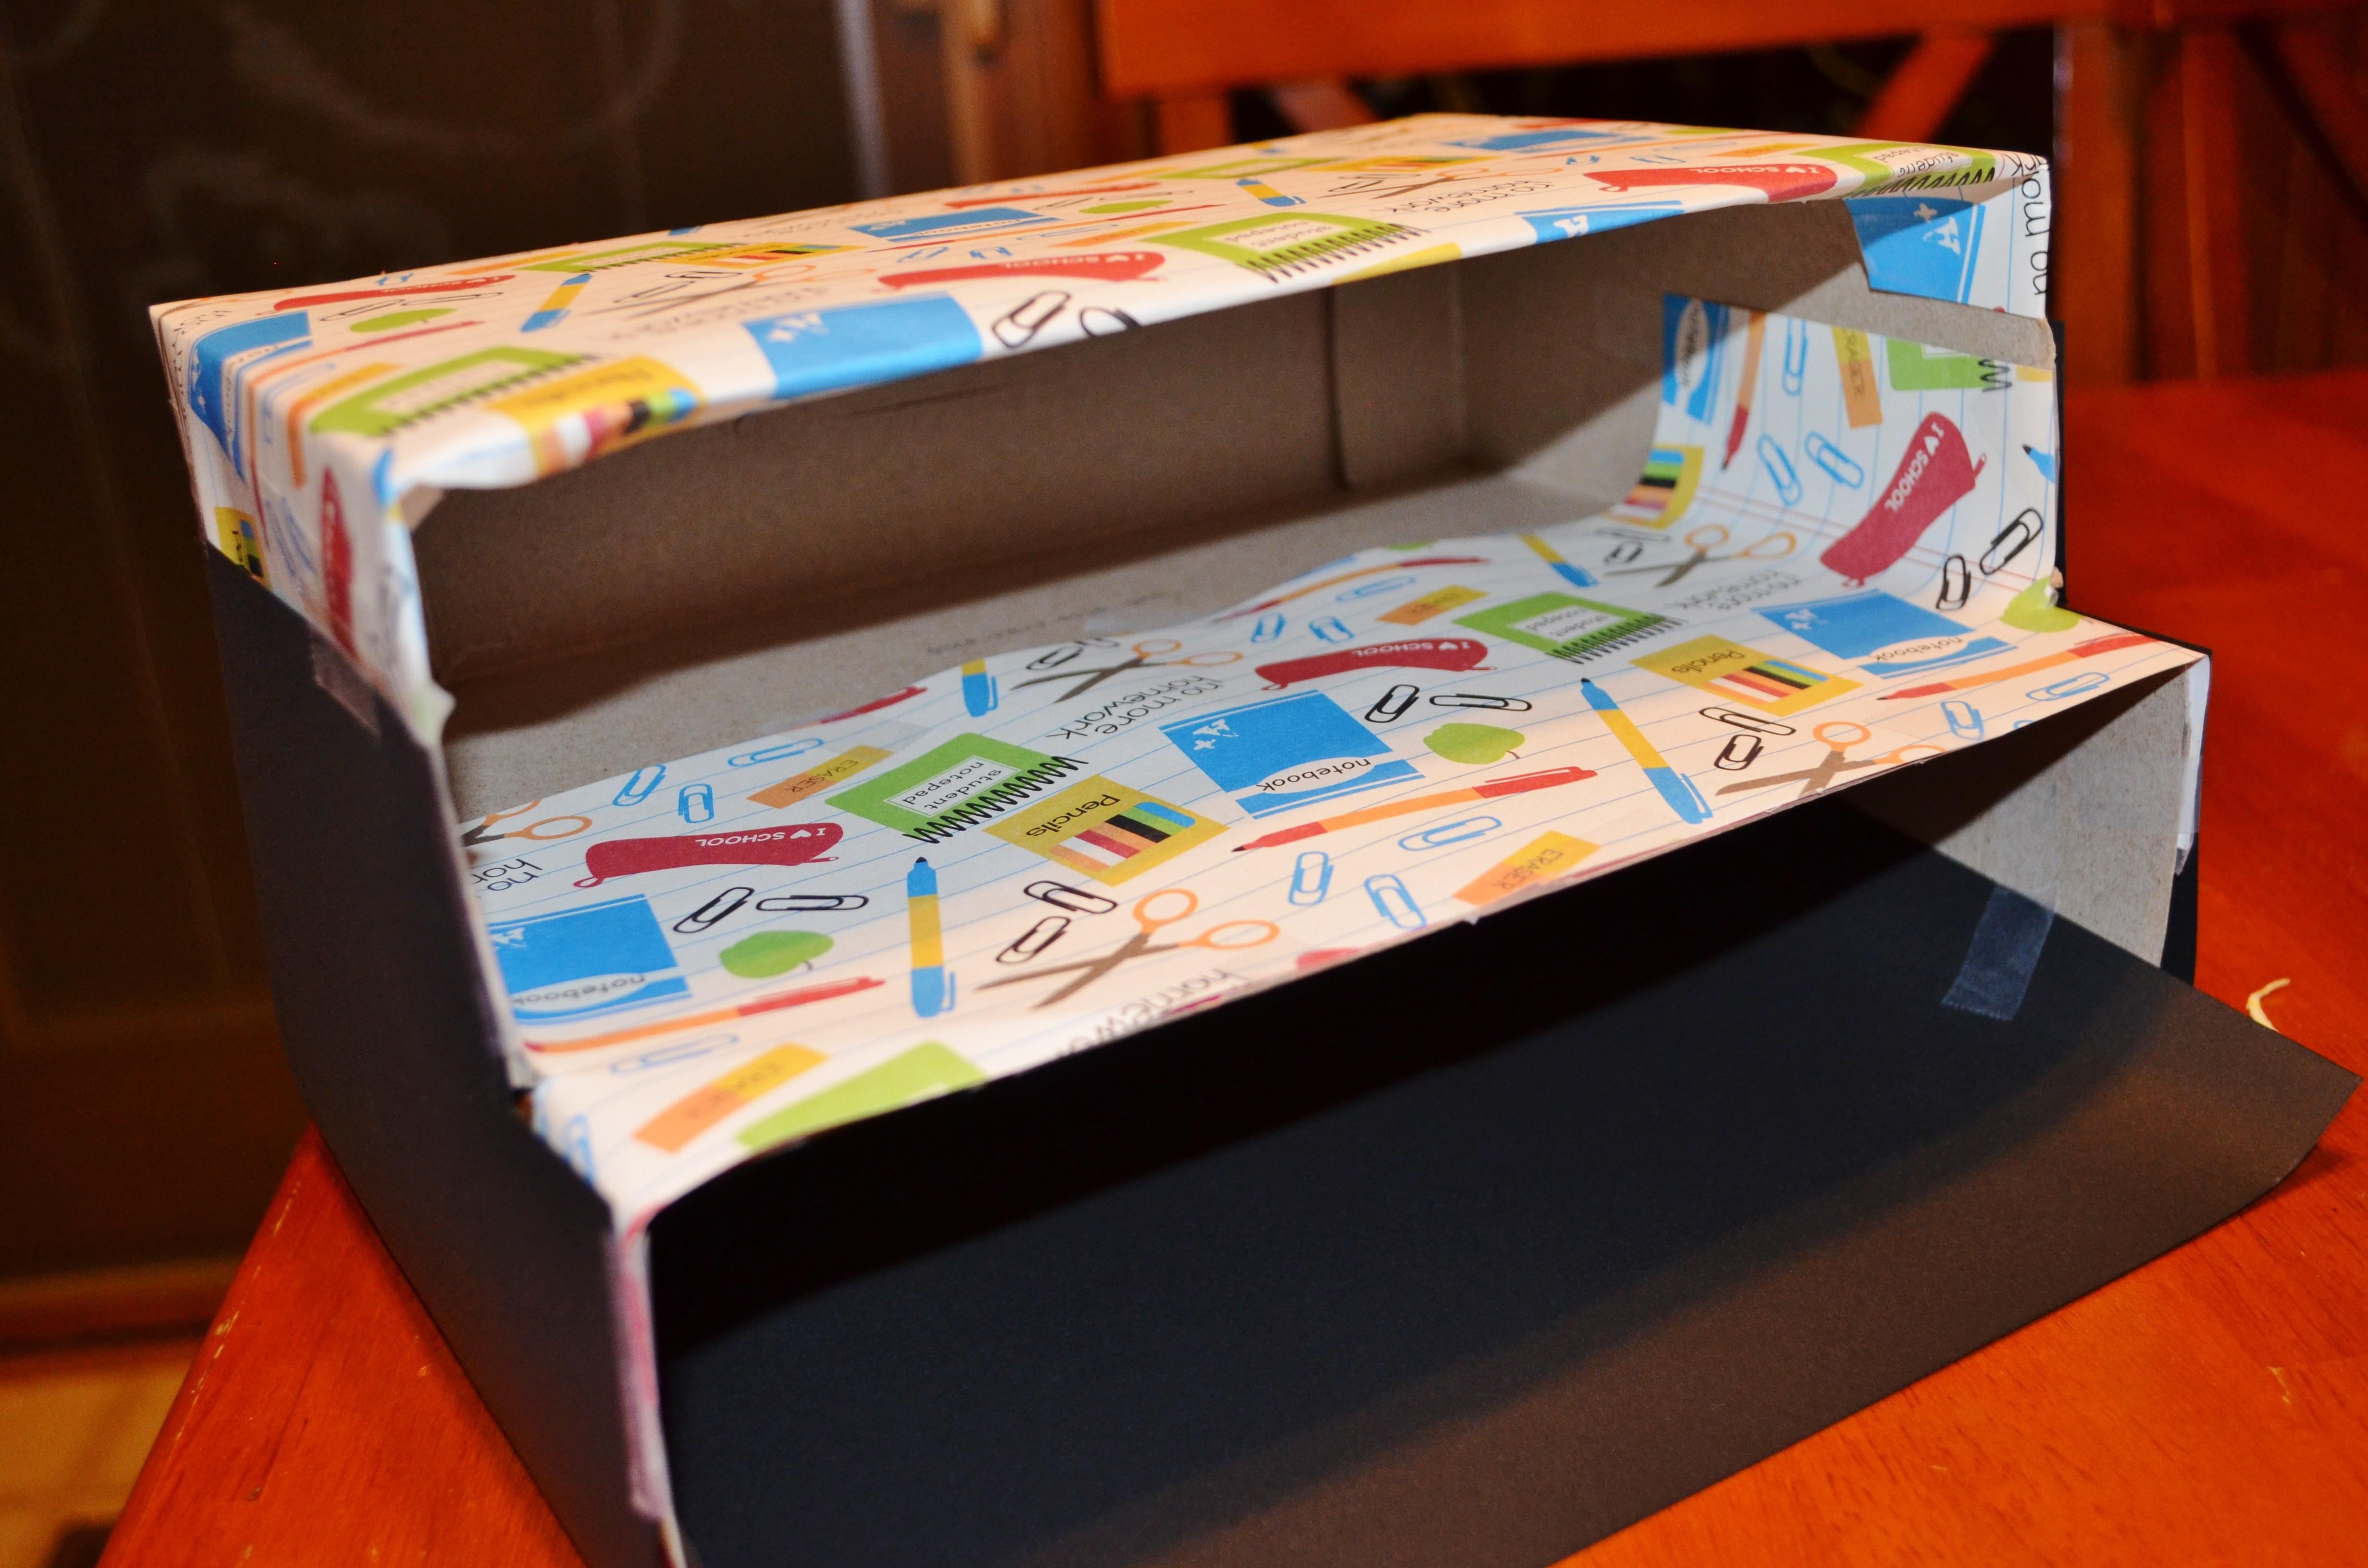 Diy Magazine Holder Cereal Box Desk Organization